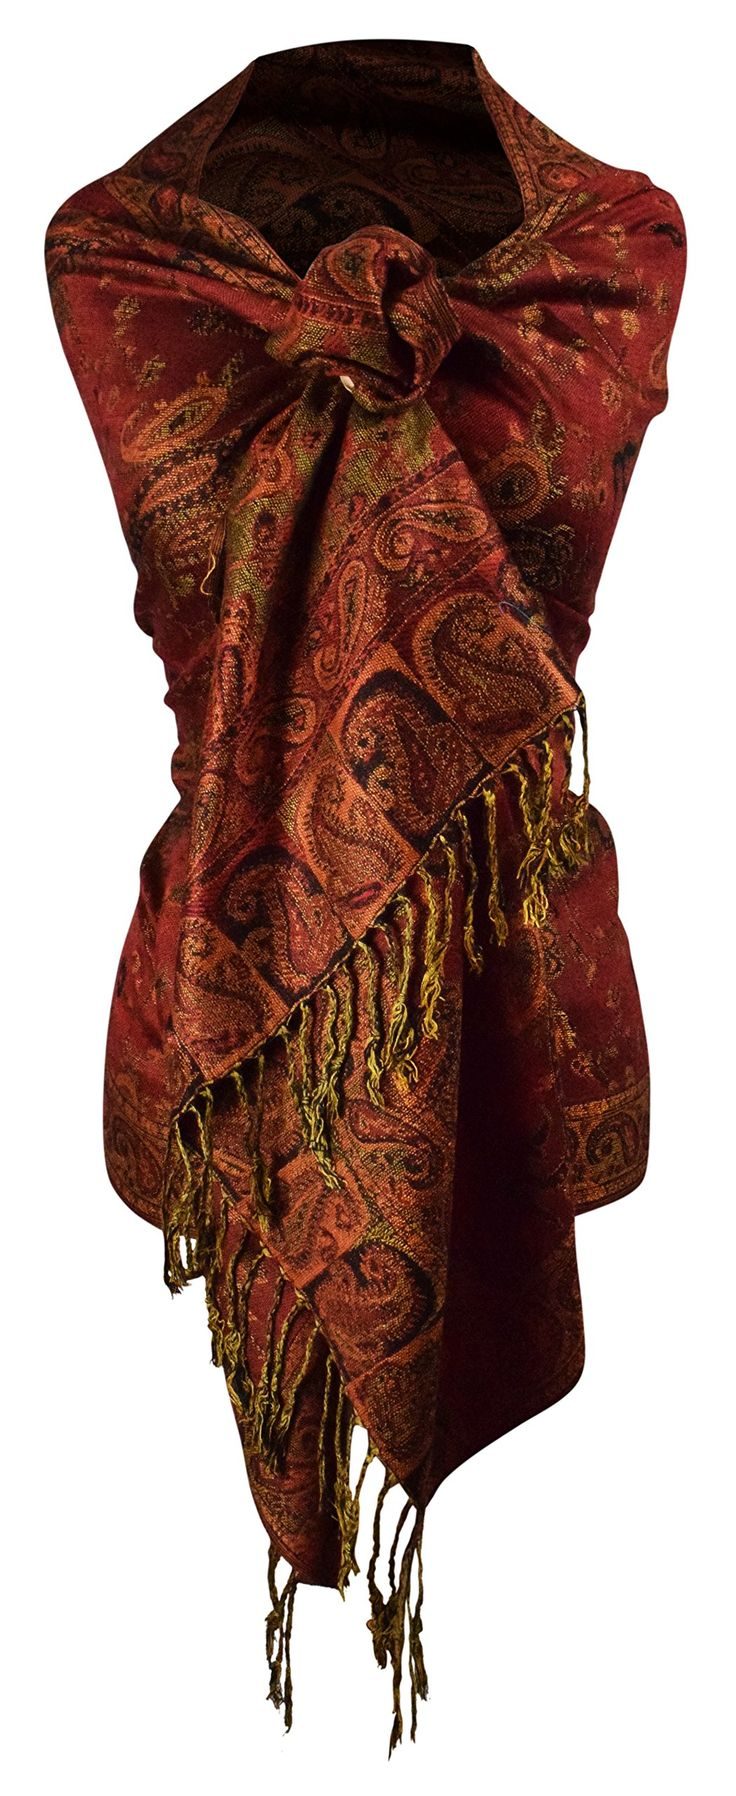 #Farbbberatung #Stilberatung #Farbenreich mit www.farben-reich.com Peach Couture Reversible Paisley Pashmina Shawl Wrap in Elegant Colors (Maroon) at Amazon Women's Clothing store: Women S Maroon Scarf